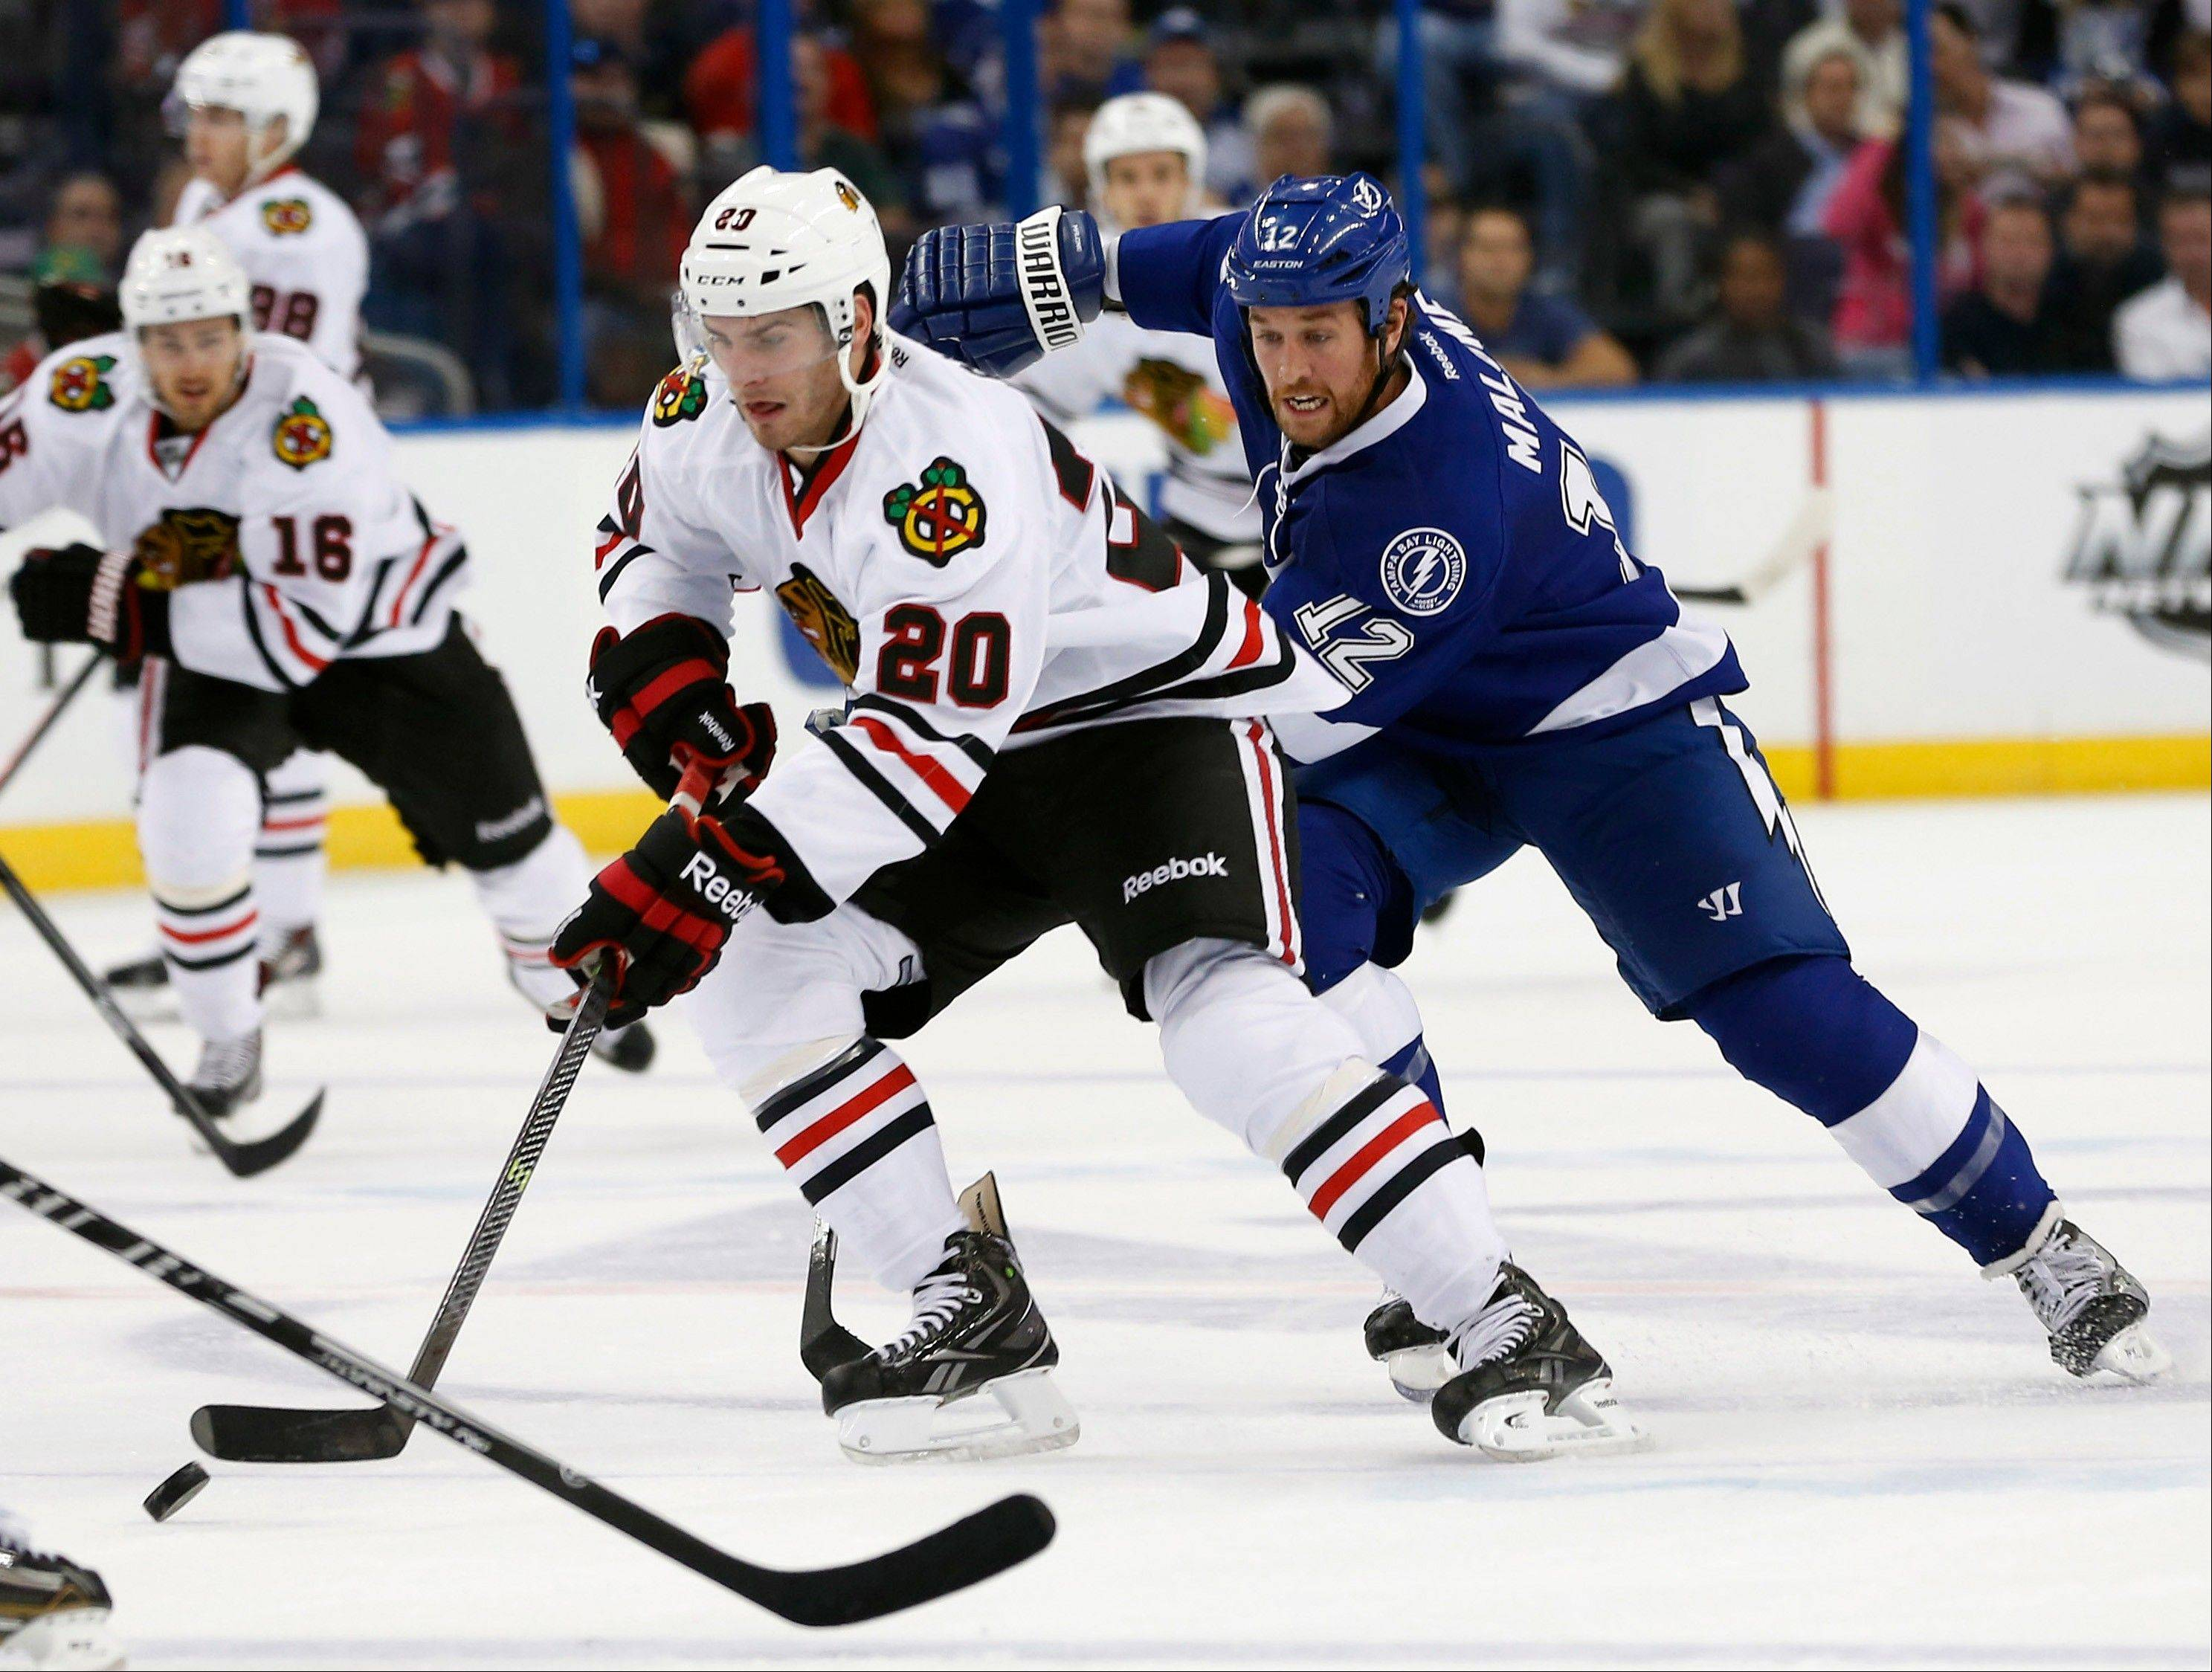 Tampa Bay Lightning left wing Ryan Malone (12) tries to catch Blackhawks left wing Brandon Saad (20) during the first period of a game on Thursday in Tampa, Fla.